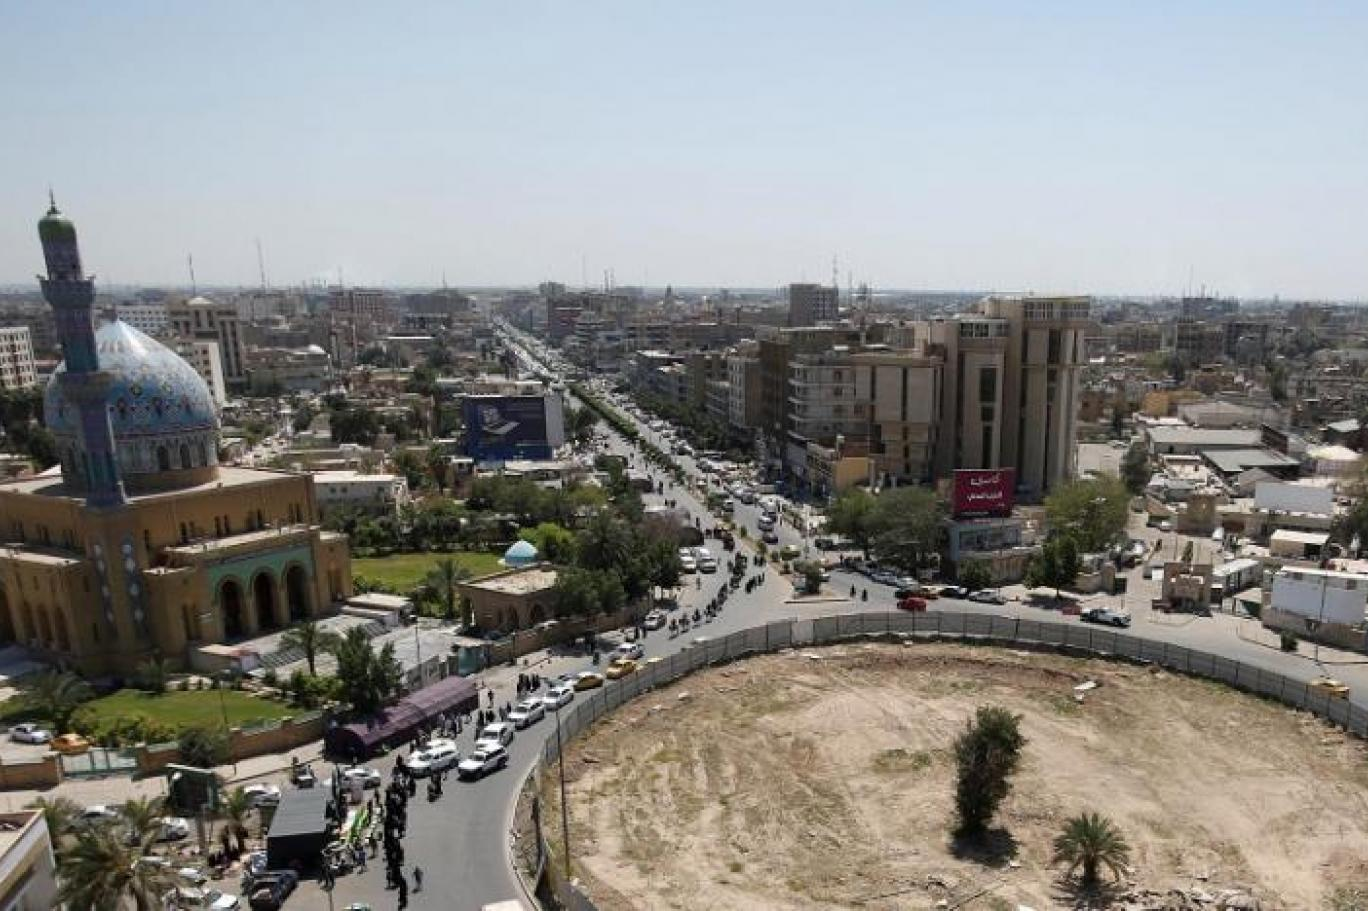 The dinar exchange rate enters the electoral fray in Iraq